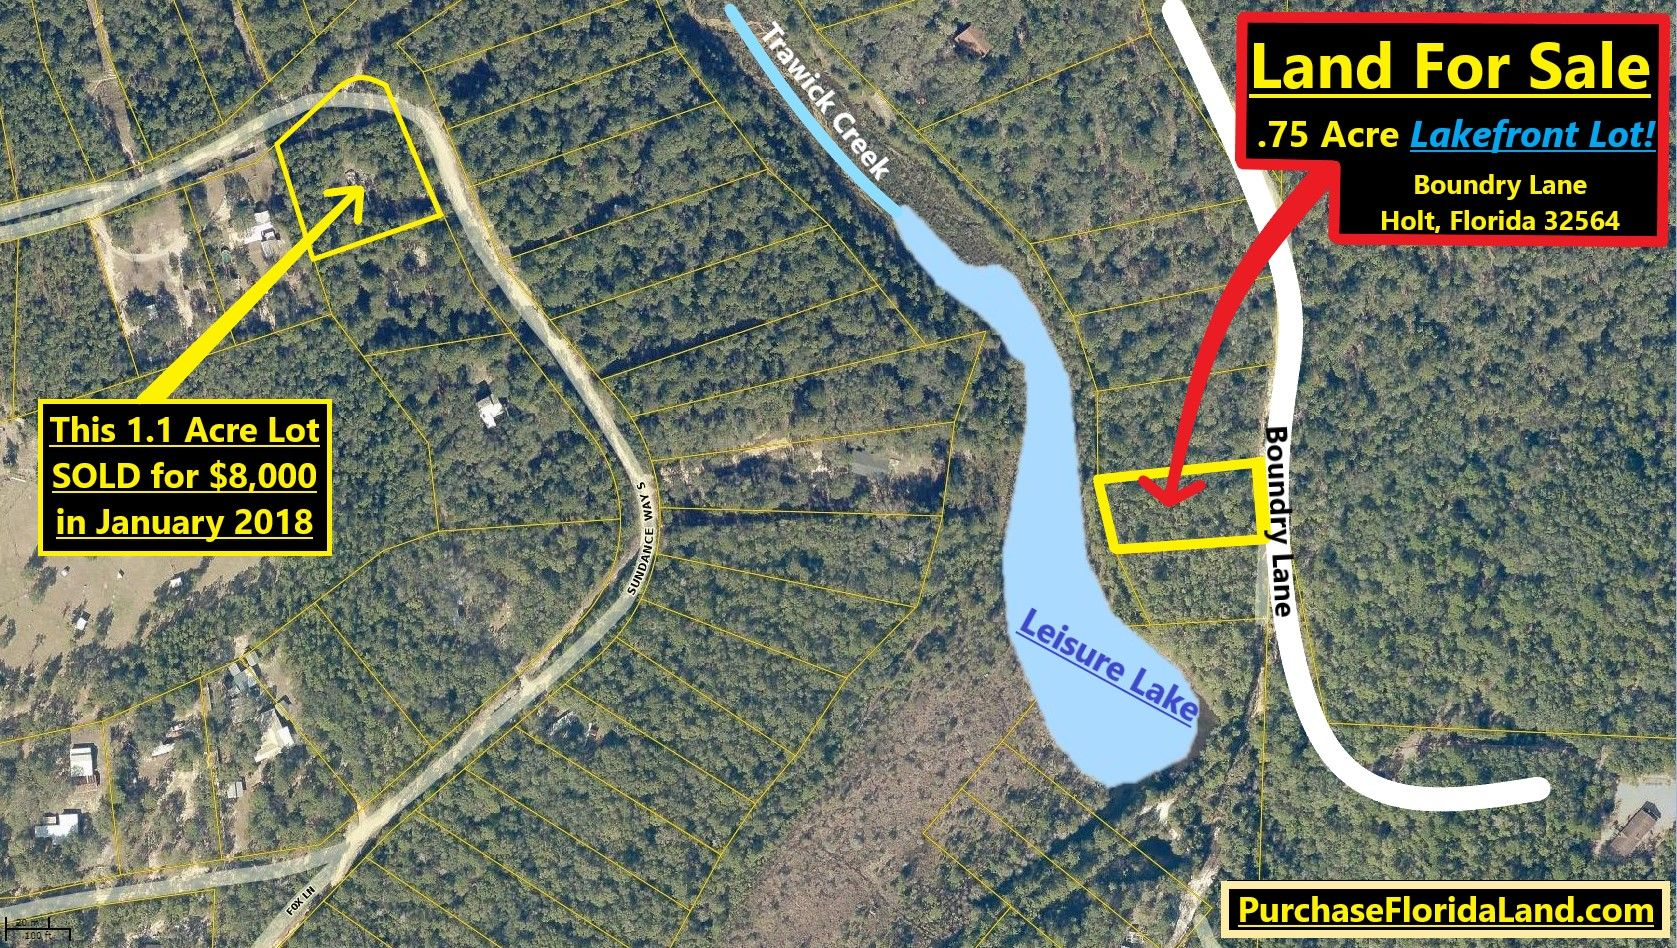 Holt Florida Map.Boundry Ln Holt Fl 32564 Lot Land 9 Photos Trulia